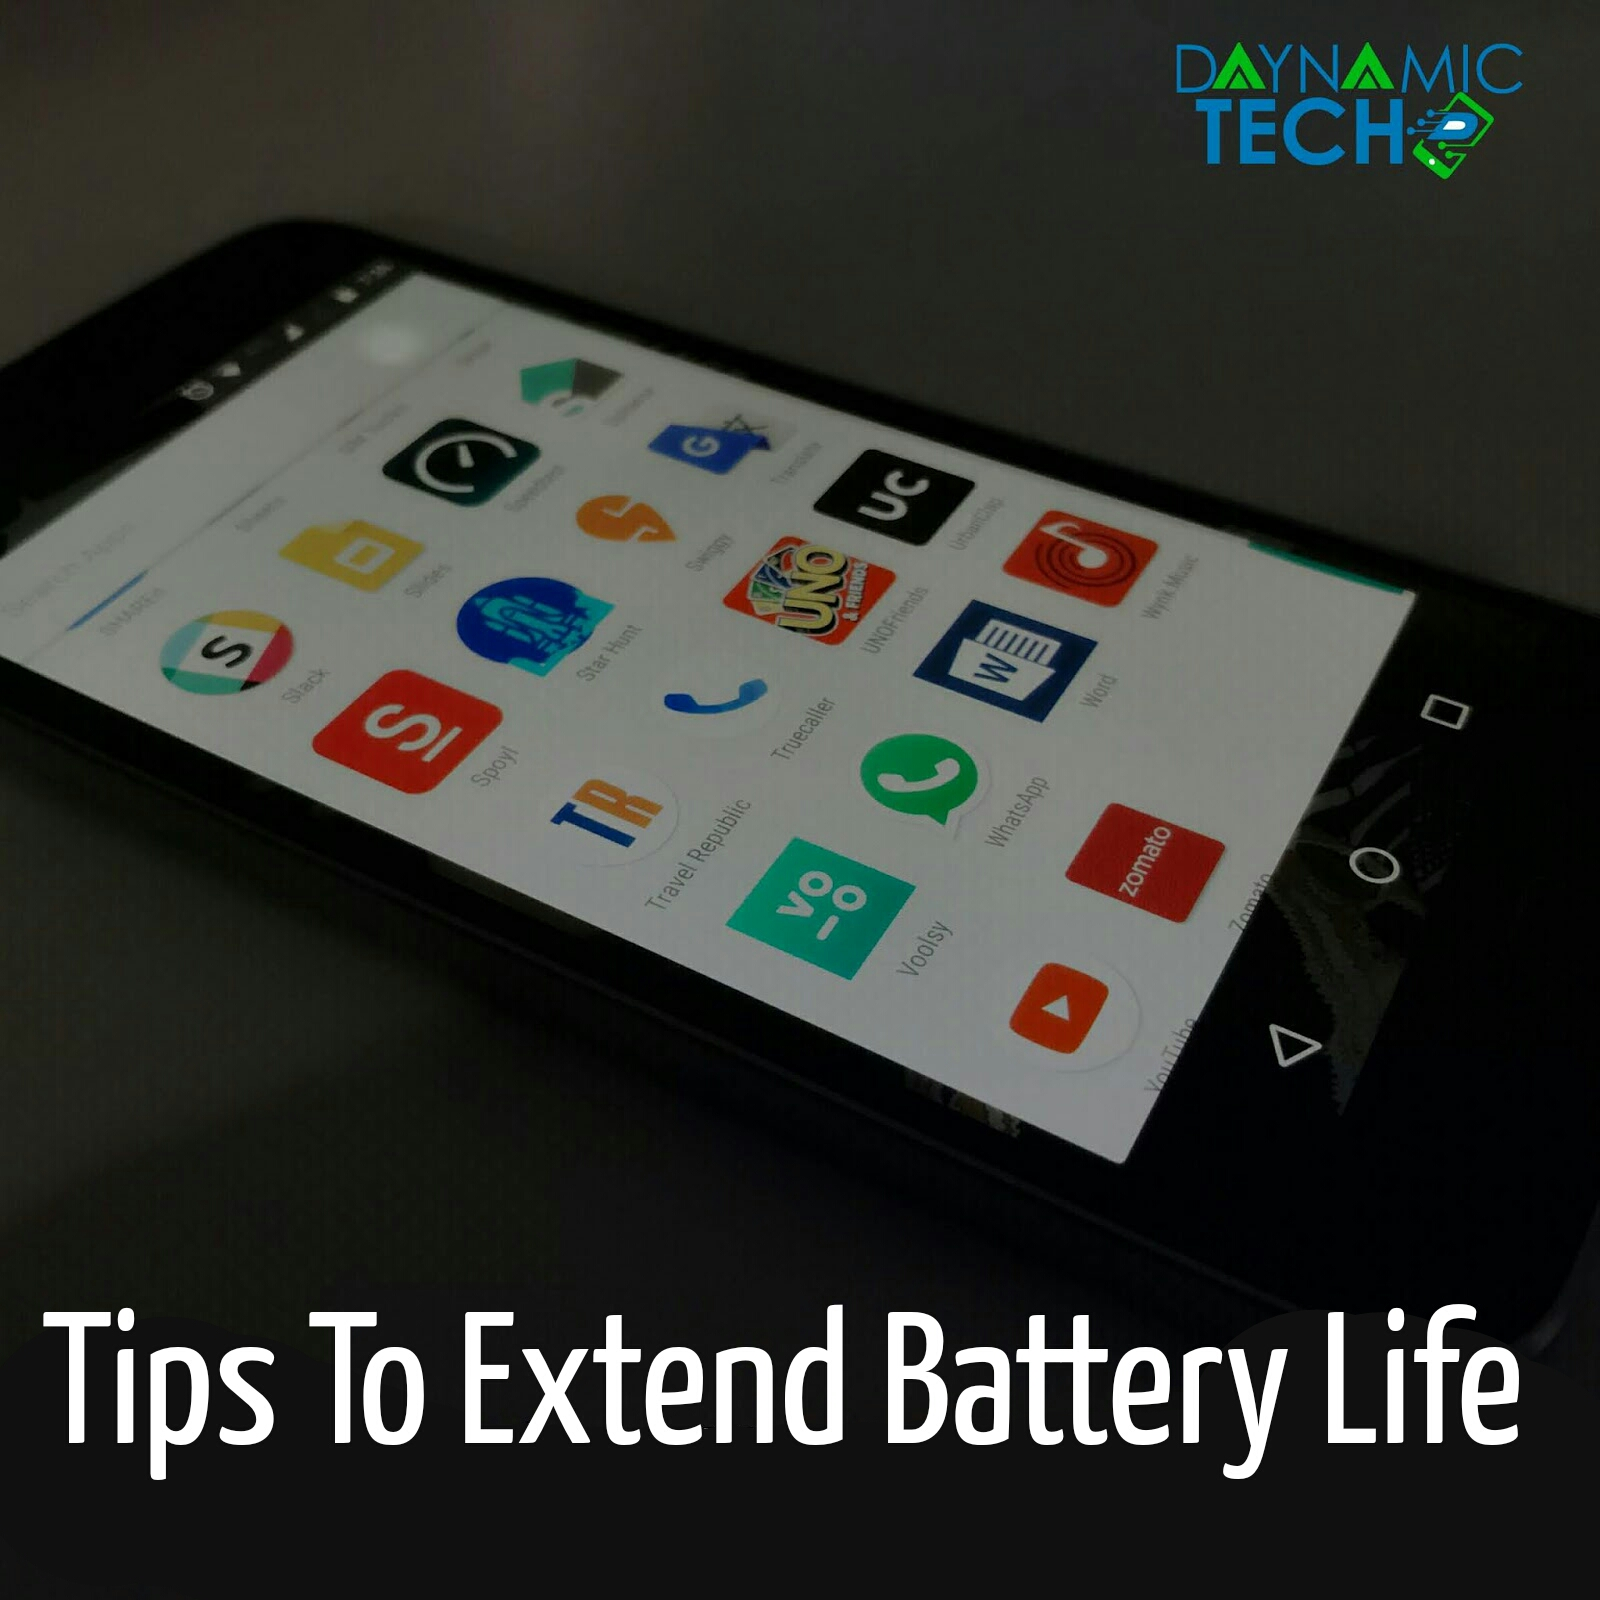 Few Tips To Extend Smartphone Battery Life